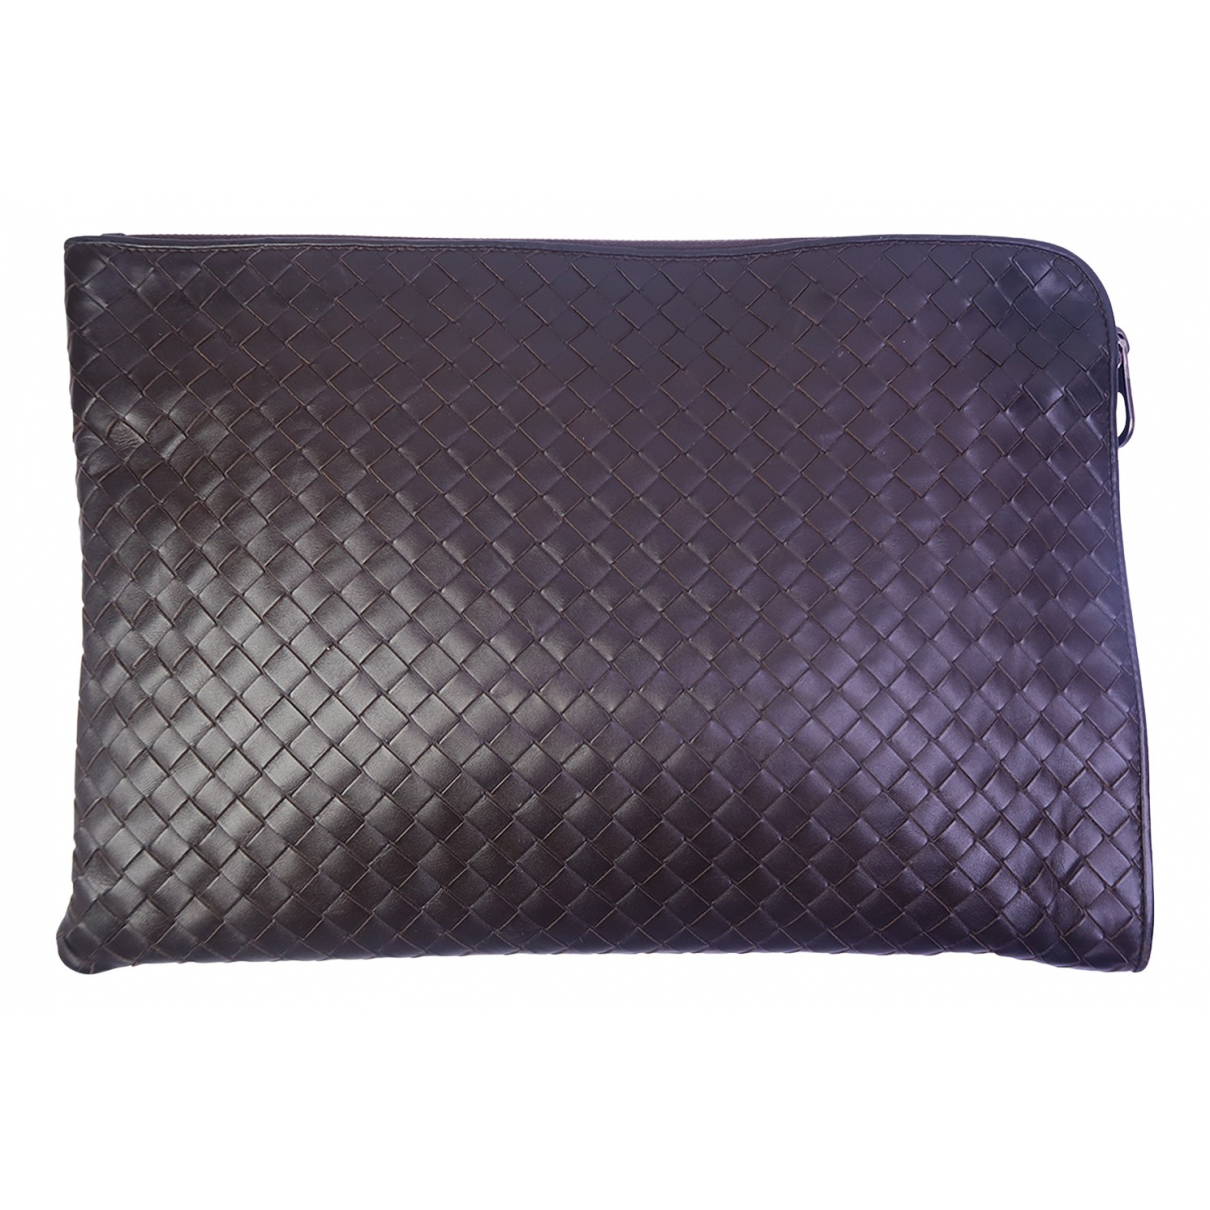 Bottega Veneta \N Clutch in  Braun Leder